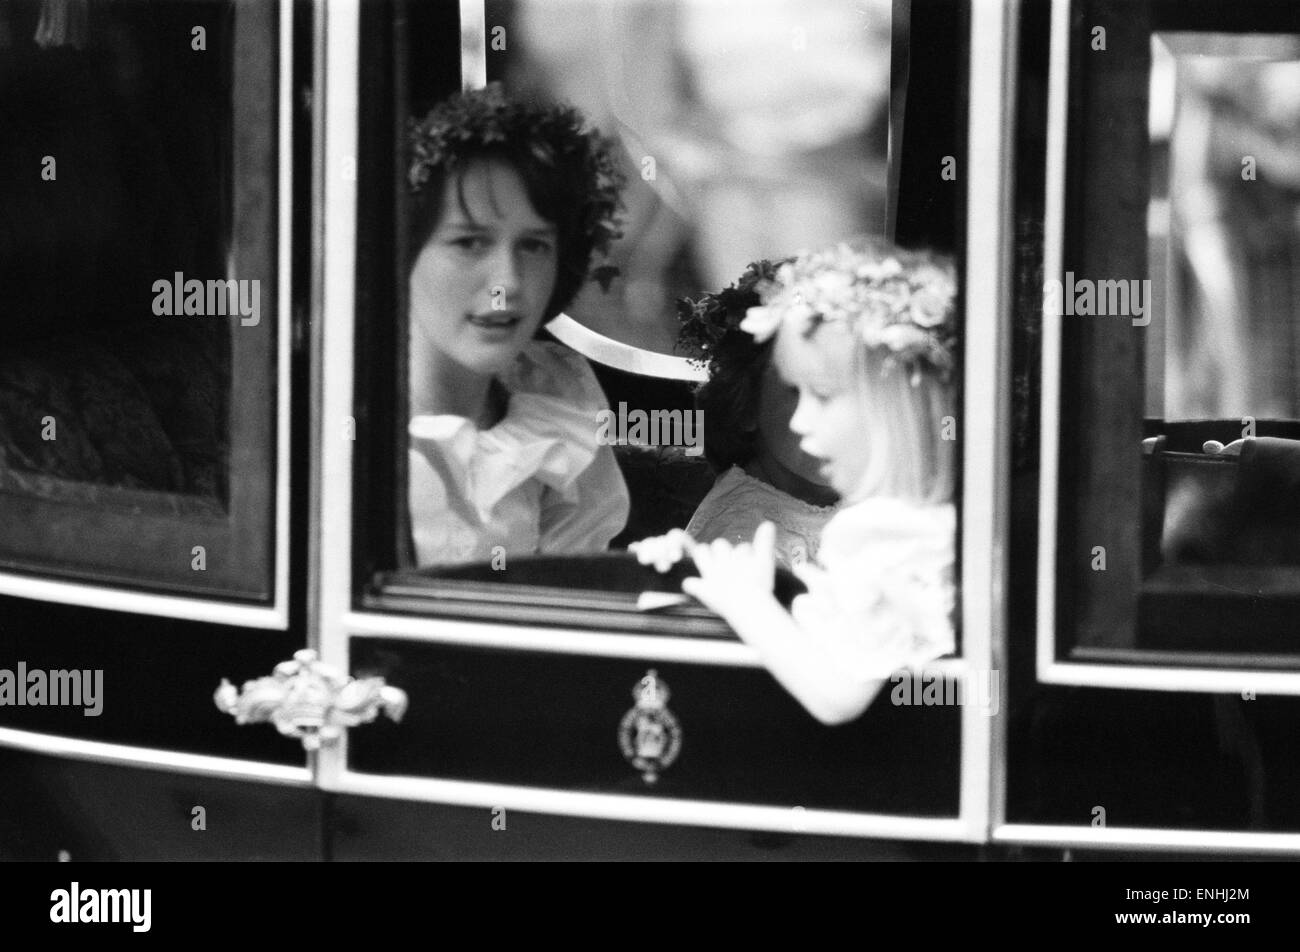 Wedding day of Prince Charles & Lady Diana Spencer, 29th July 1981. Pictured: Bridal attendants in royal procession, India Hicks (aged 13) & Clementine Hambro (aged 5). Stock Photo